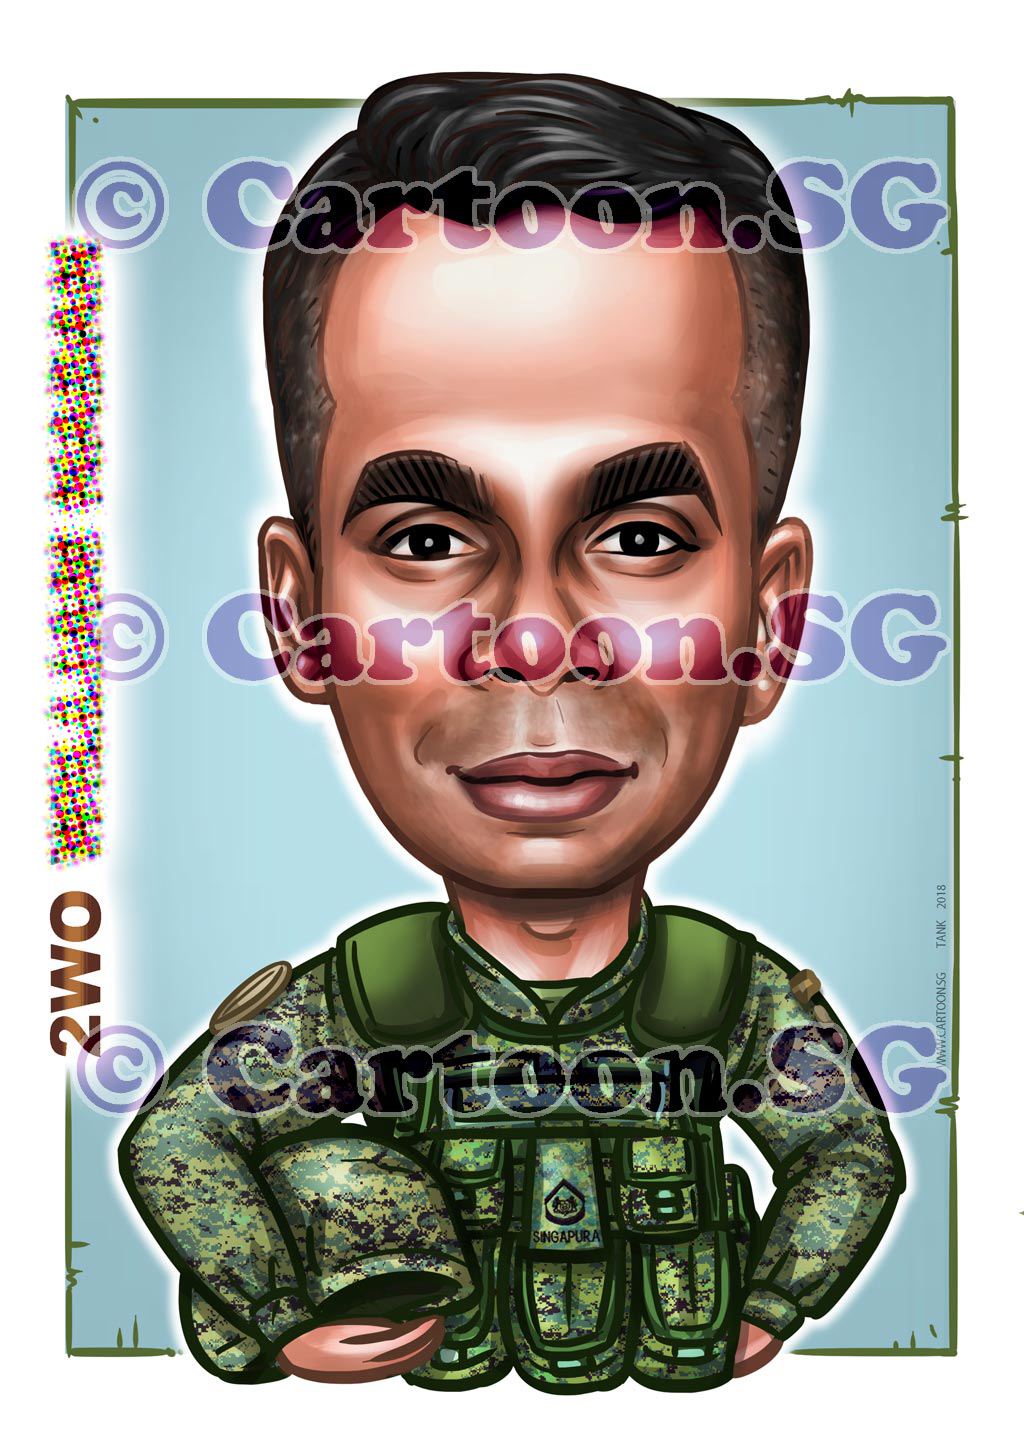 2018-02-18-Caricature-Singapore-digital-army-special-foeces-SAF-ILBV-jacket-vest-gift.jpg